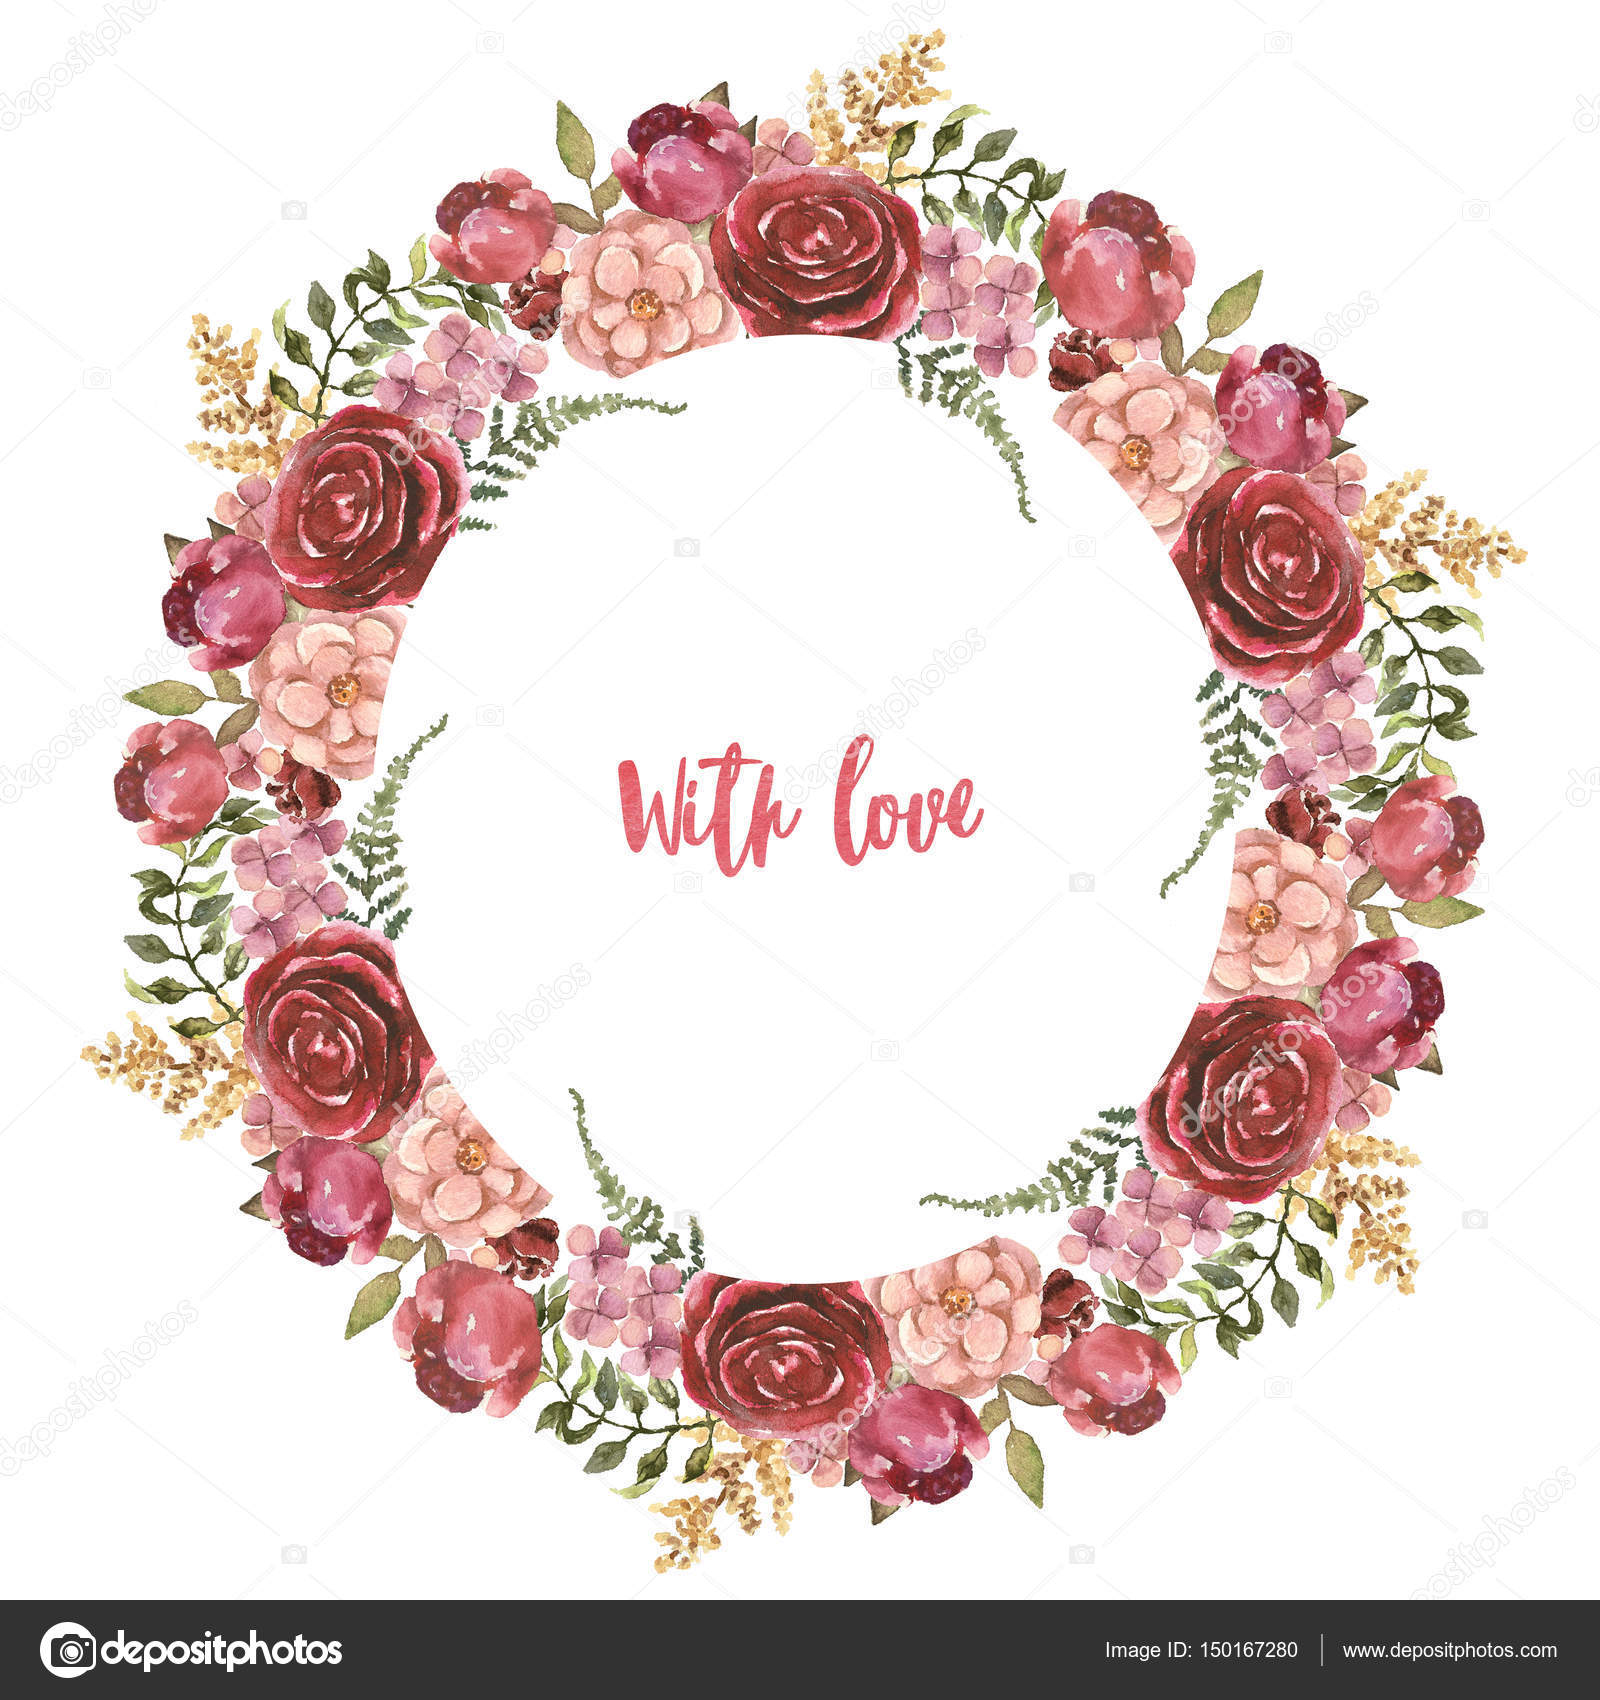 Watercolor hand-painted floral wreath frame — Stock Photo